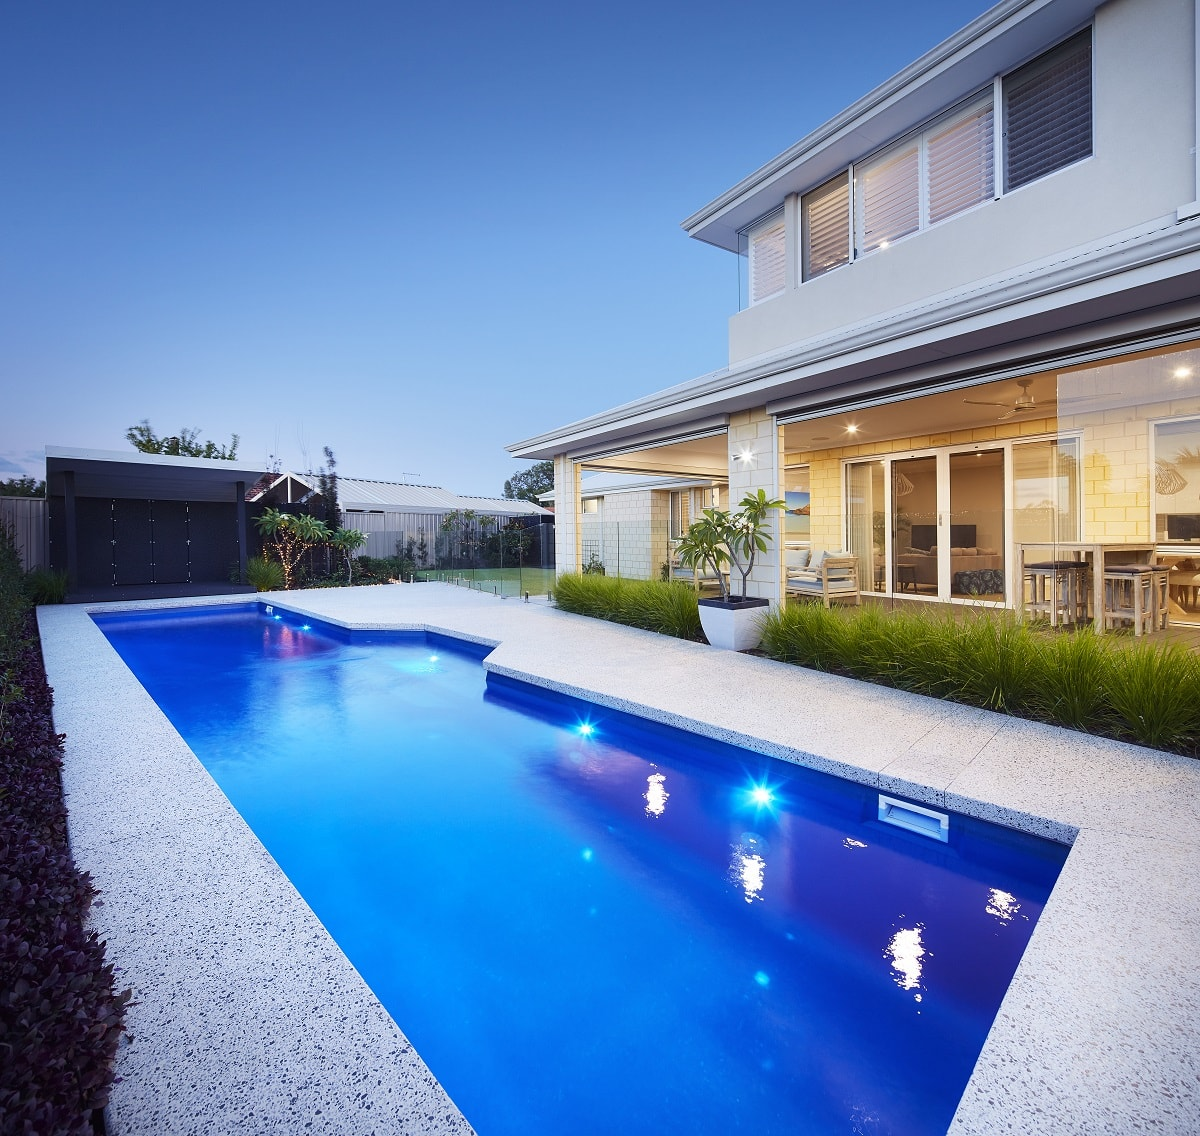 12mlap-pool-royal-blue-shimmer-willetton-5